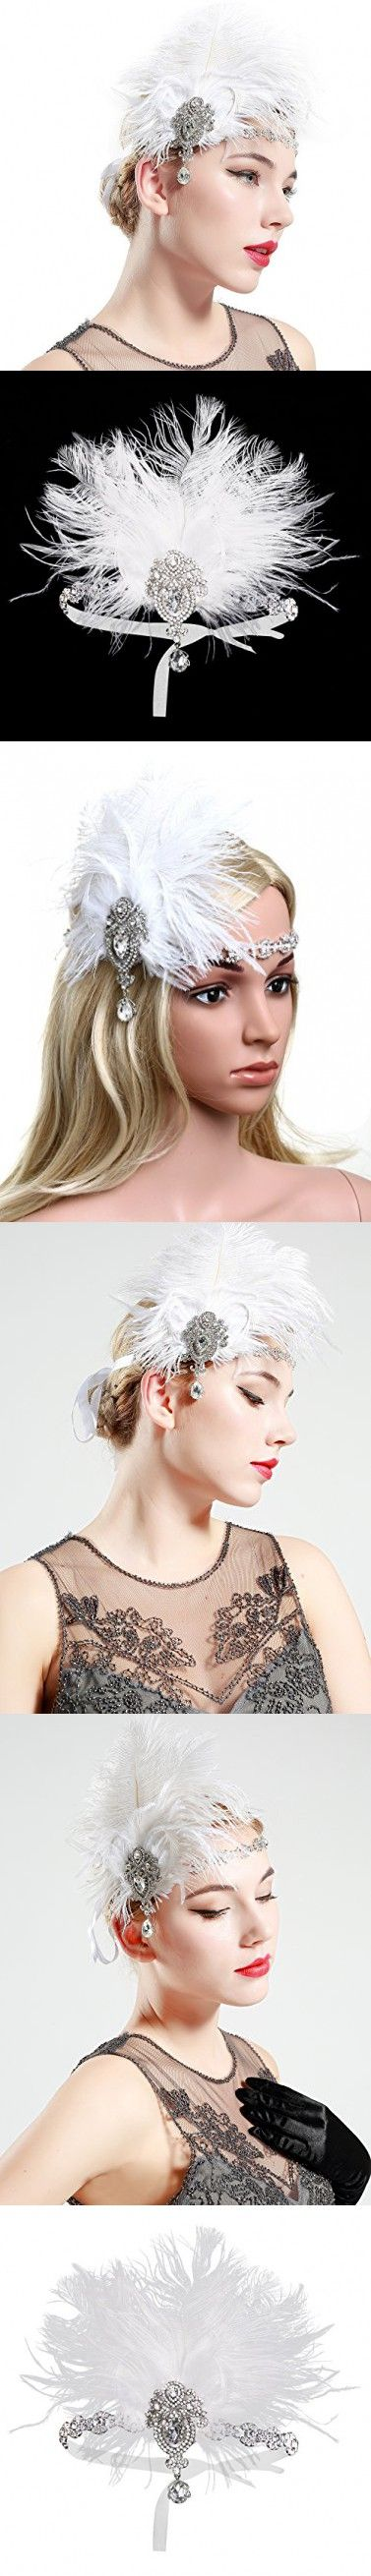 BABEYOND Women's Ostrish Feather Crystal Headband Wedding Bridal Feather Headband Flapper Headpiece 1920s